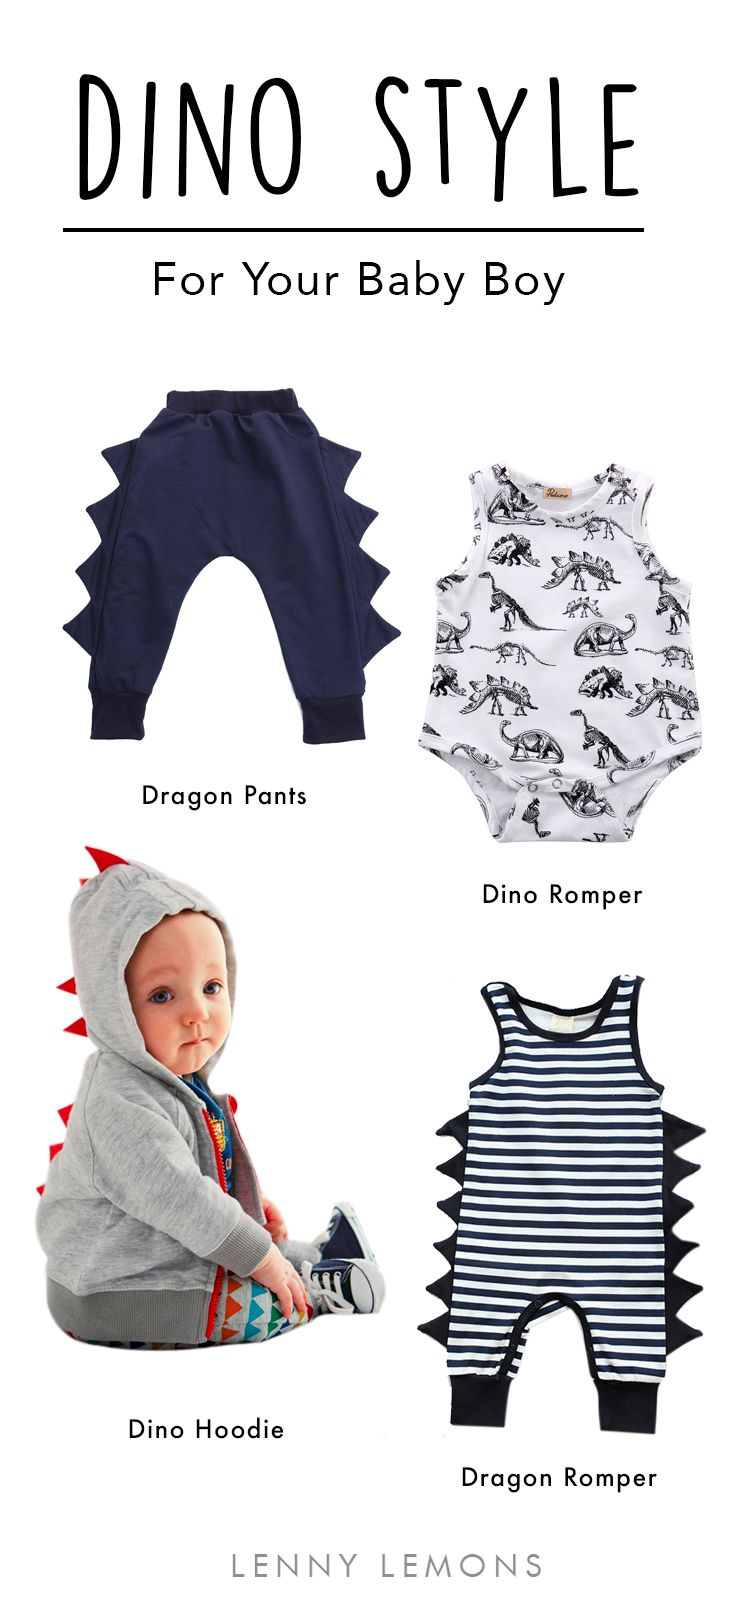 FREE USA SHIPPING! Fun, cute and adorable clothes for your little boy! Inspired in dinosaurs and dragons. Funny and comfortable options for everyday.